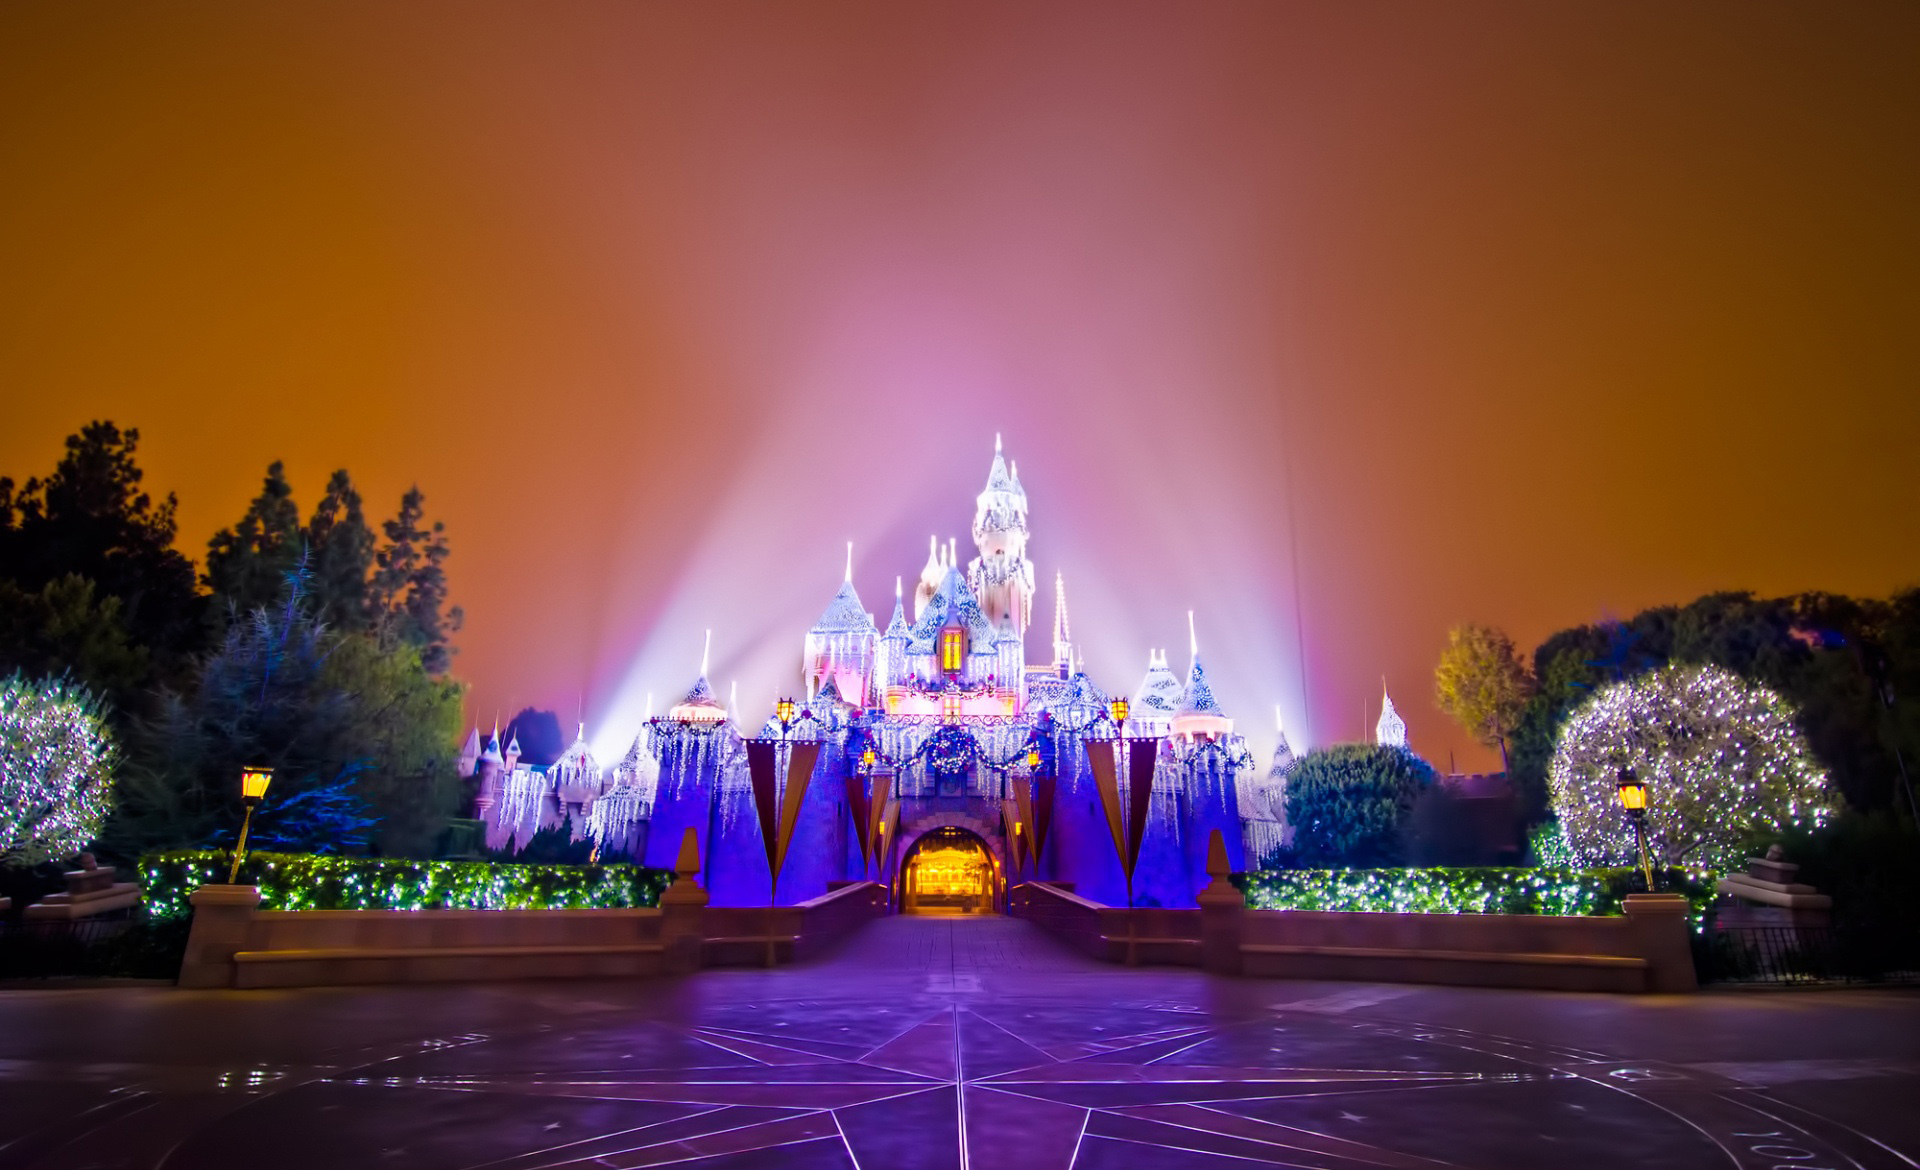 Inspirational Wallpapers With Quotes High Resolution Disney Castle Wallpapers Hd Pixelstalk Net